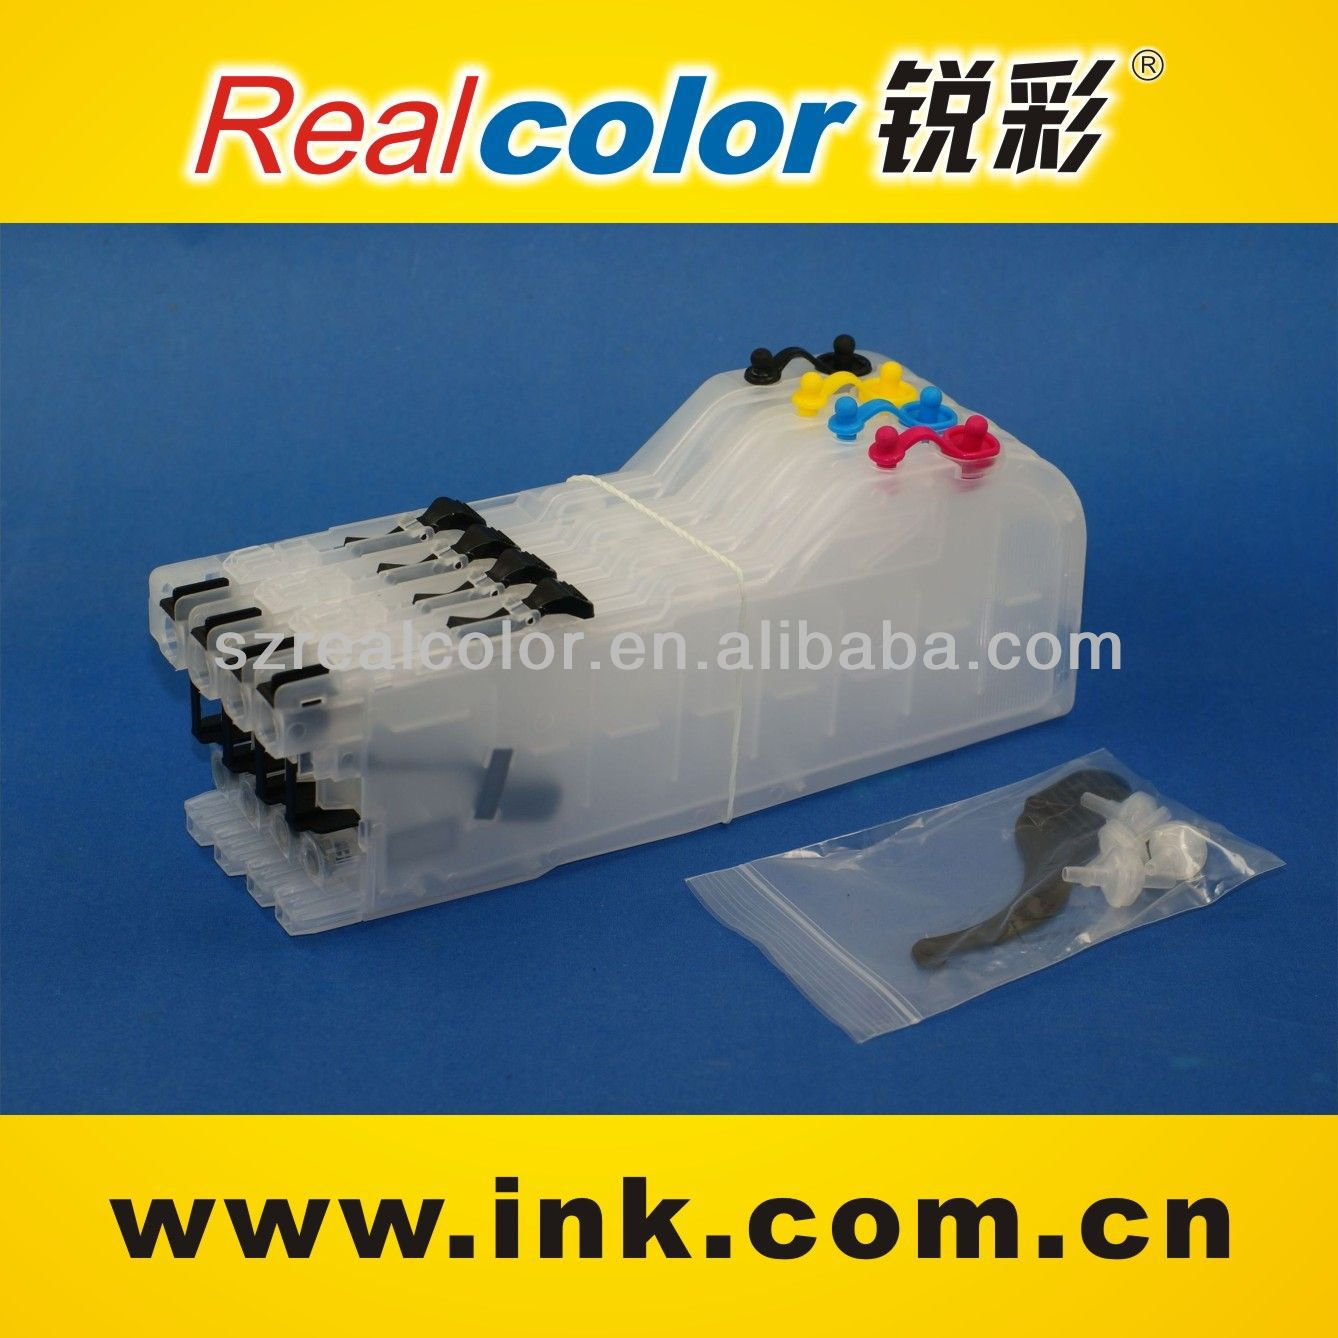 New model ! ! Refillable ink cartridge for Brother LC103 LC113 LC123 LC107 LC563 LC565 LC567